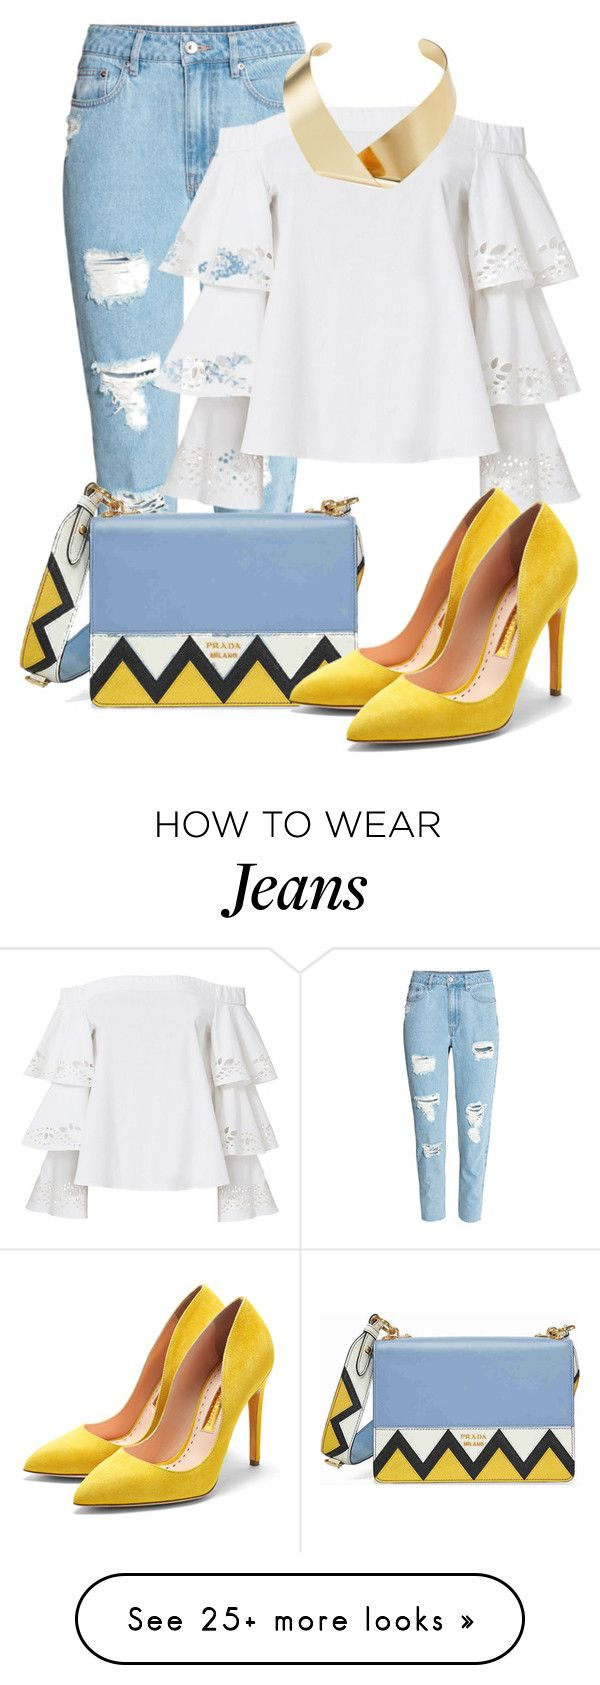 """""""Summer Jeans"""" by nblworld on Polyvore featuring H&M, Exclusive for Intermix, Prada, Rupert Sanderson and Kenneth Jay Lane"""